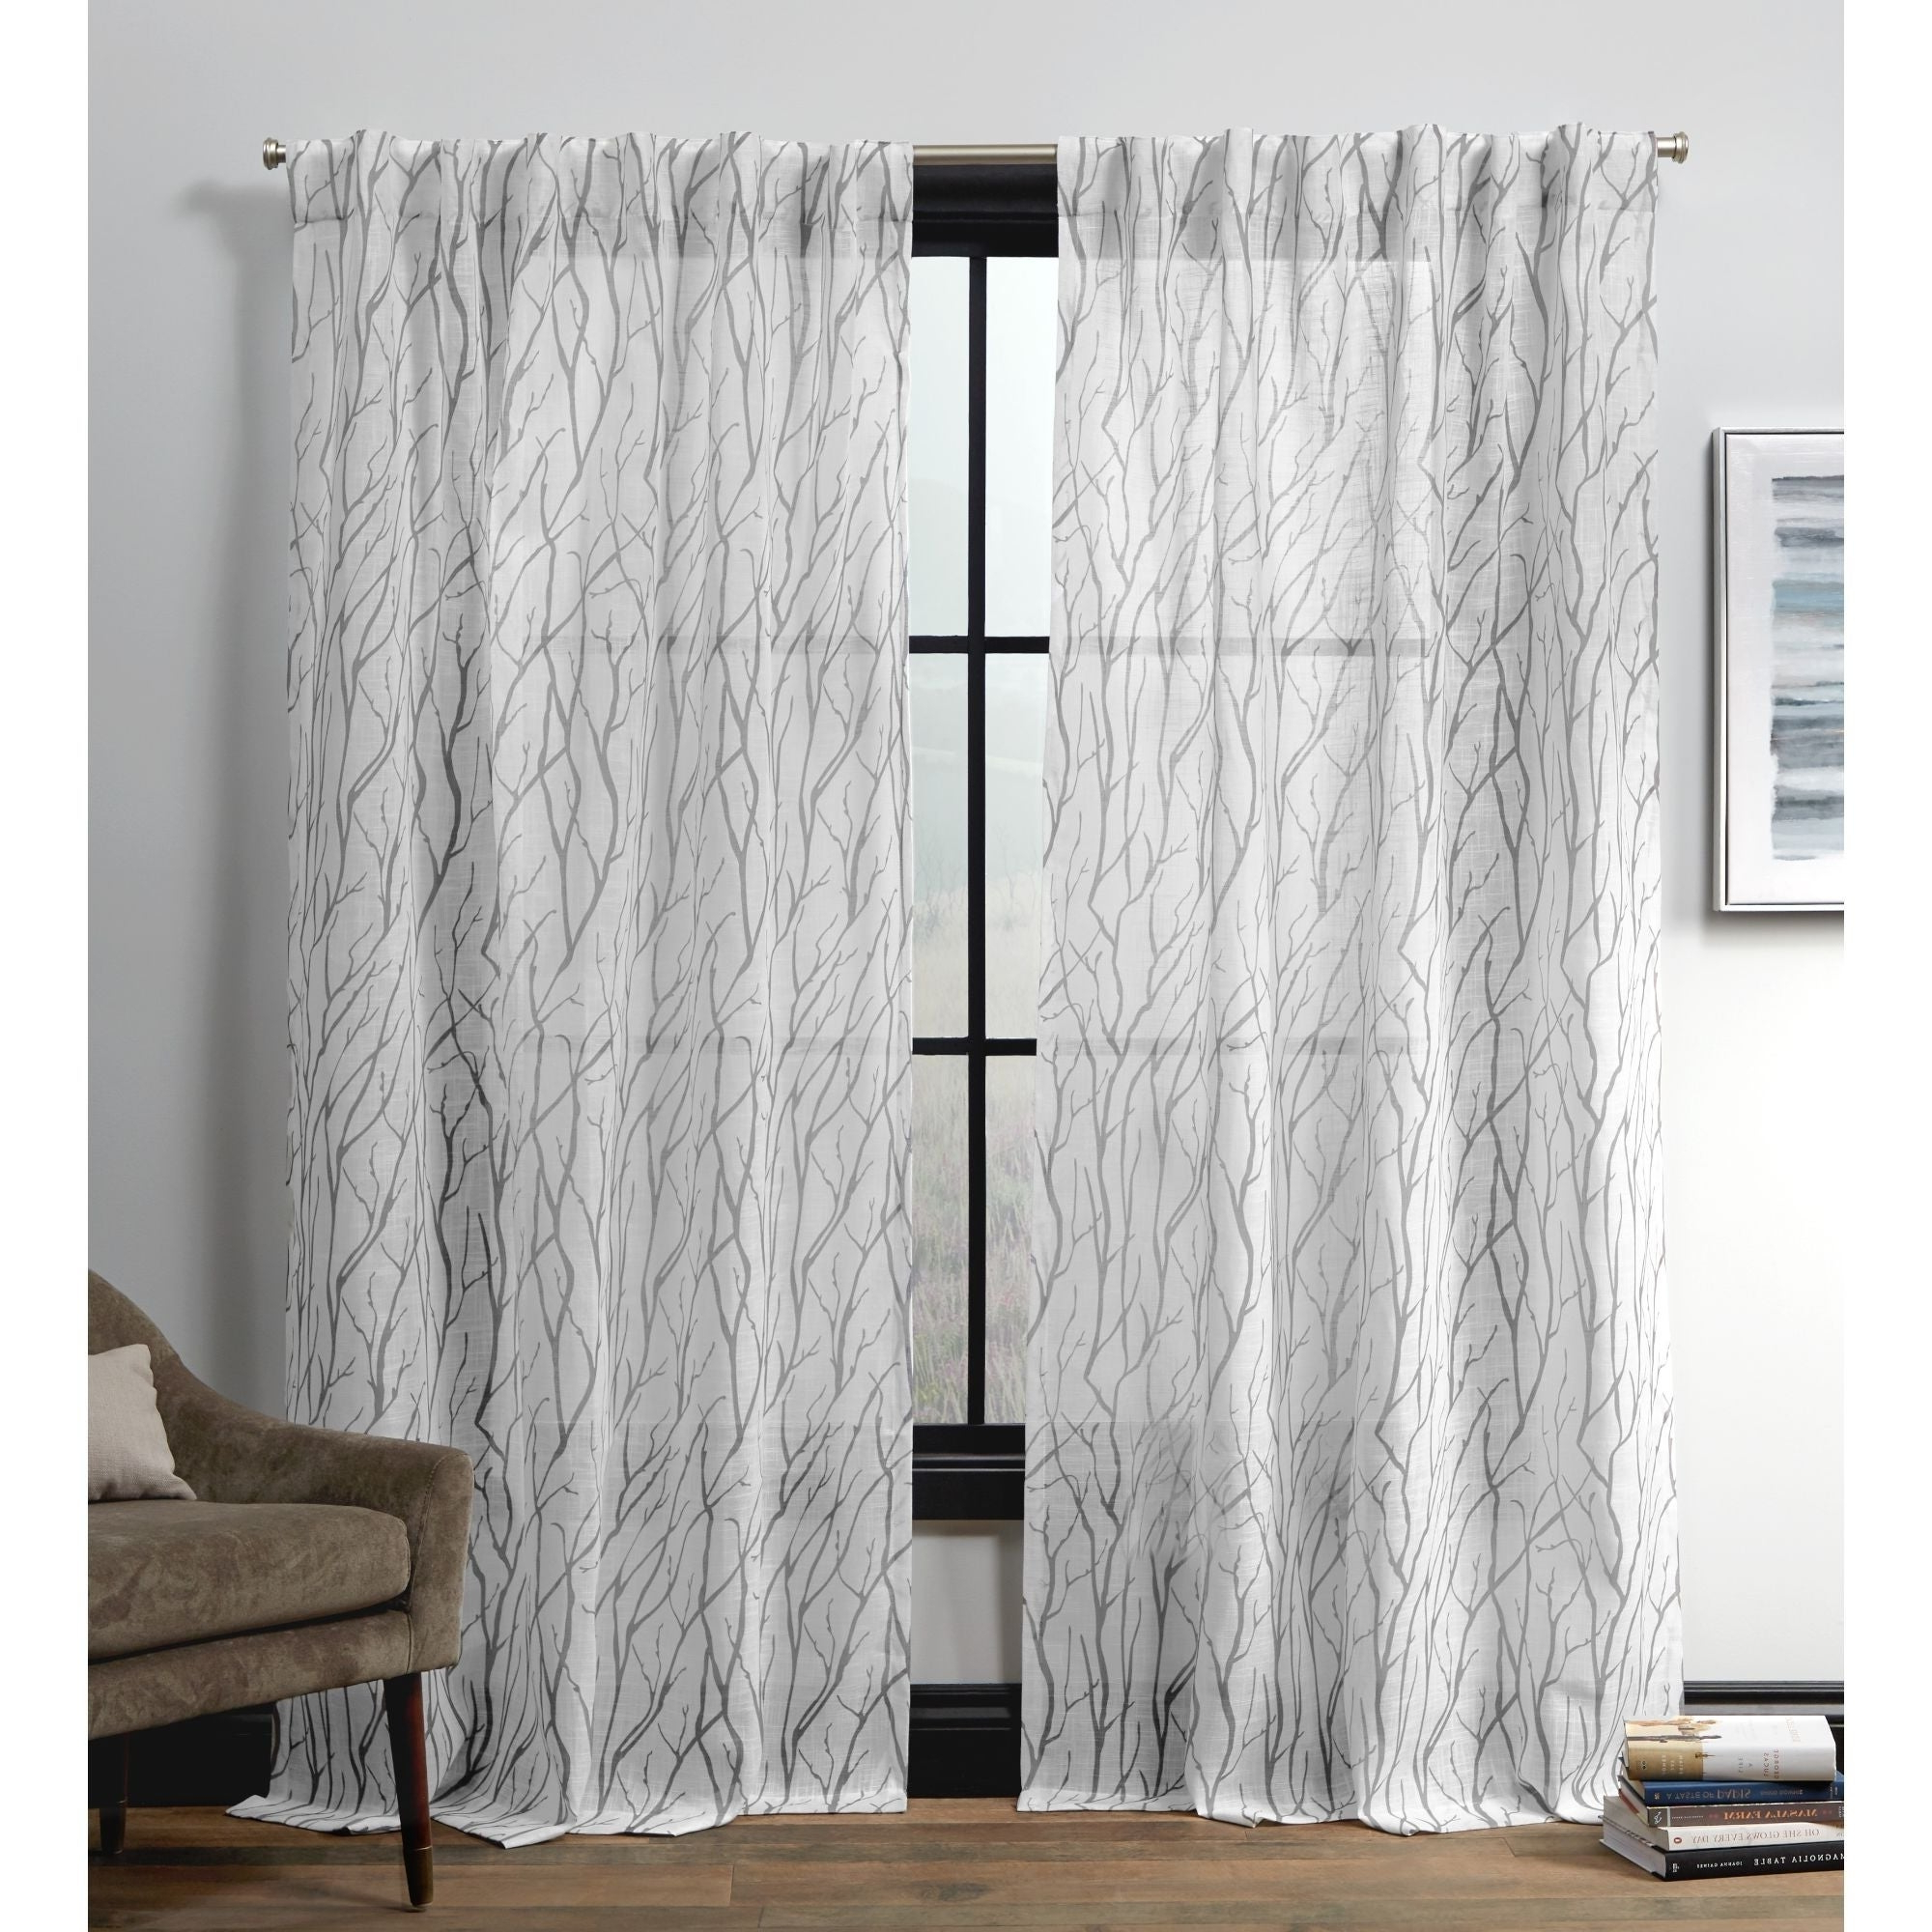 Ati Home Oakdale Motif Textured Linen Hidden Tab Top Sheer Panel Pair Pertaining To Most Recently Released Oakdale Textured Linen Sheer Grommet Top Curtain Panel Pairs (View 2 of 20)